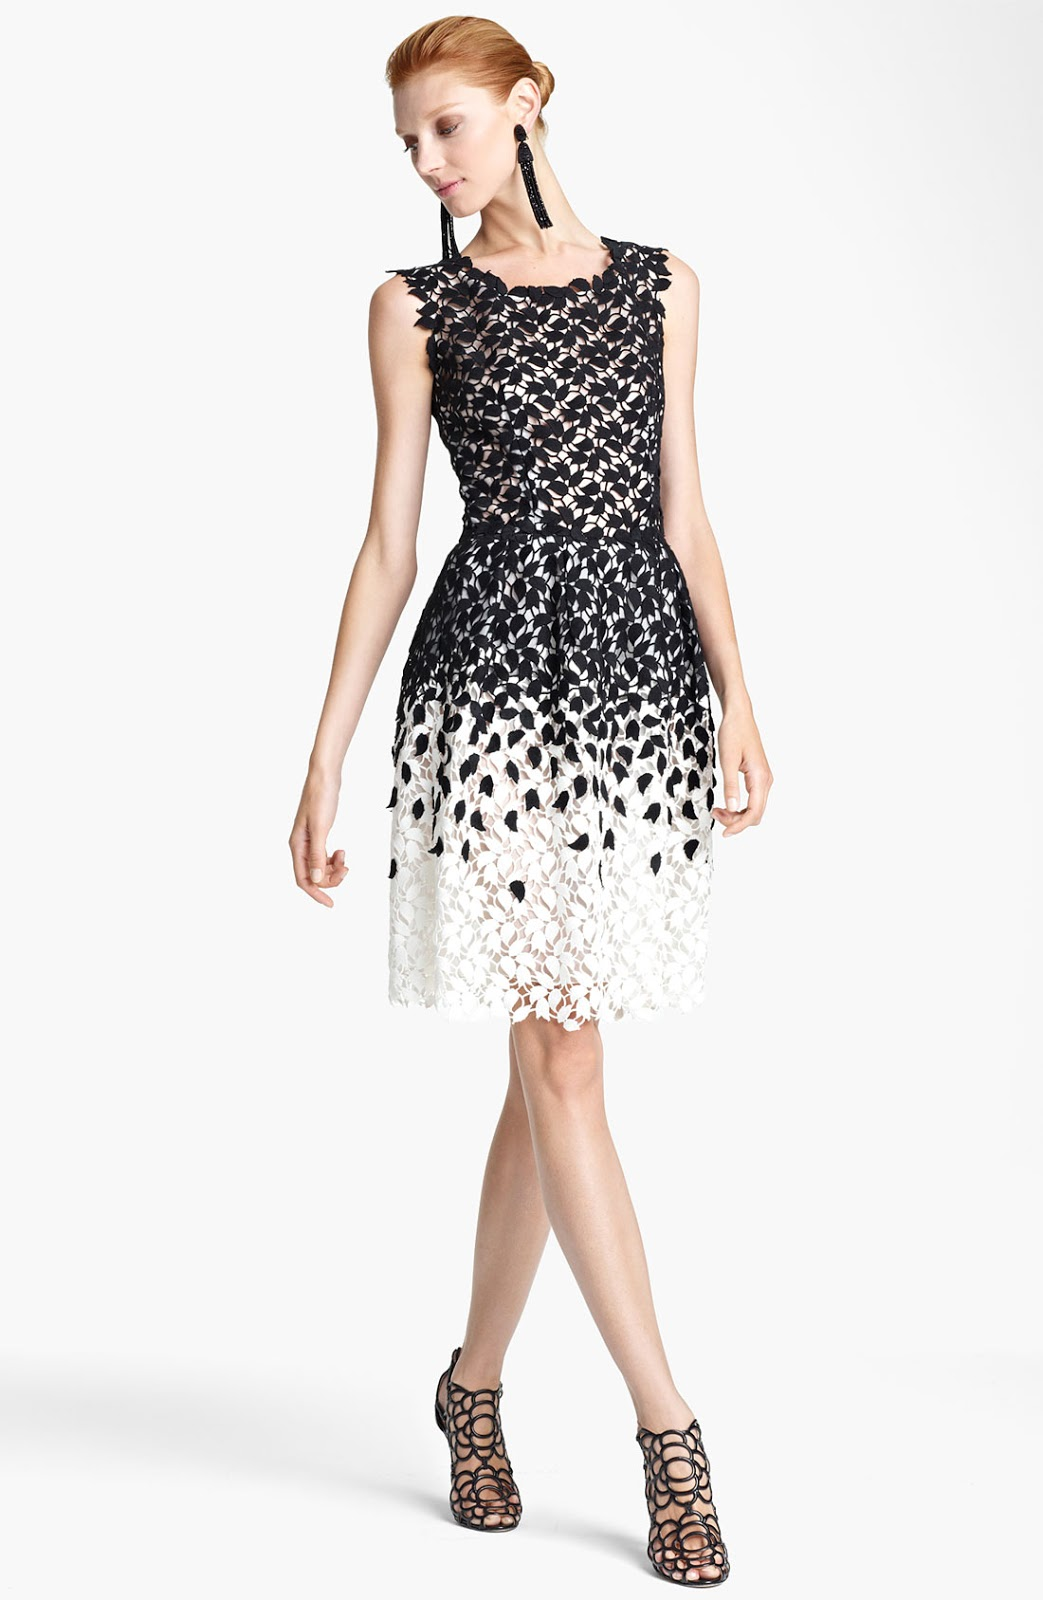 OSCAR DE LA RENTA Ombré Lace Dress